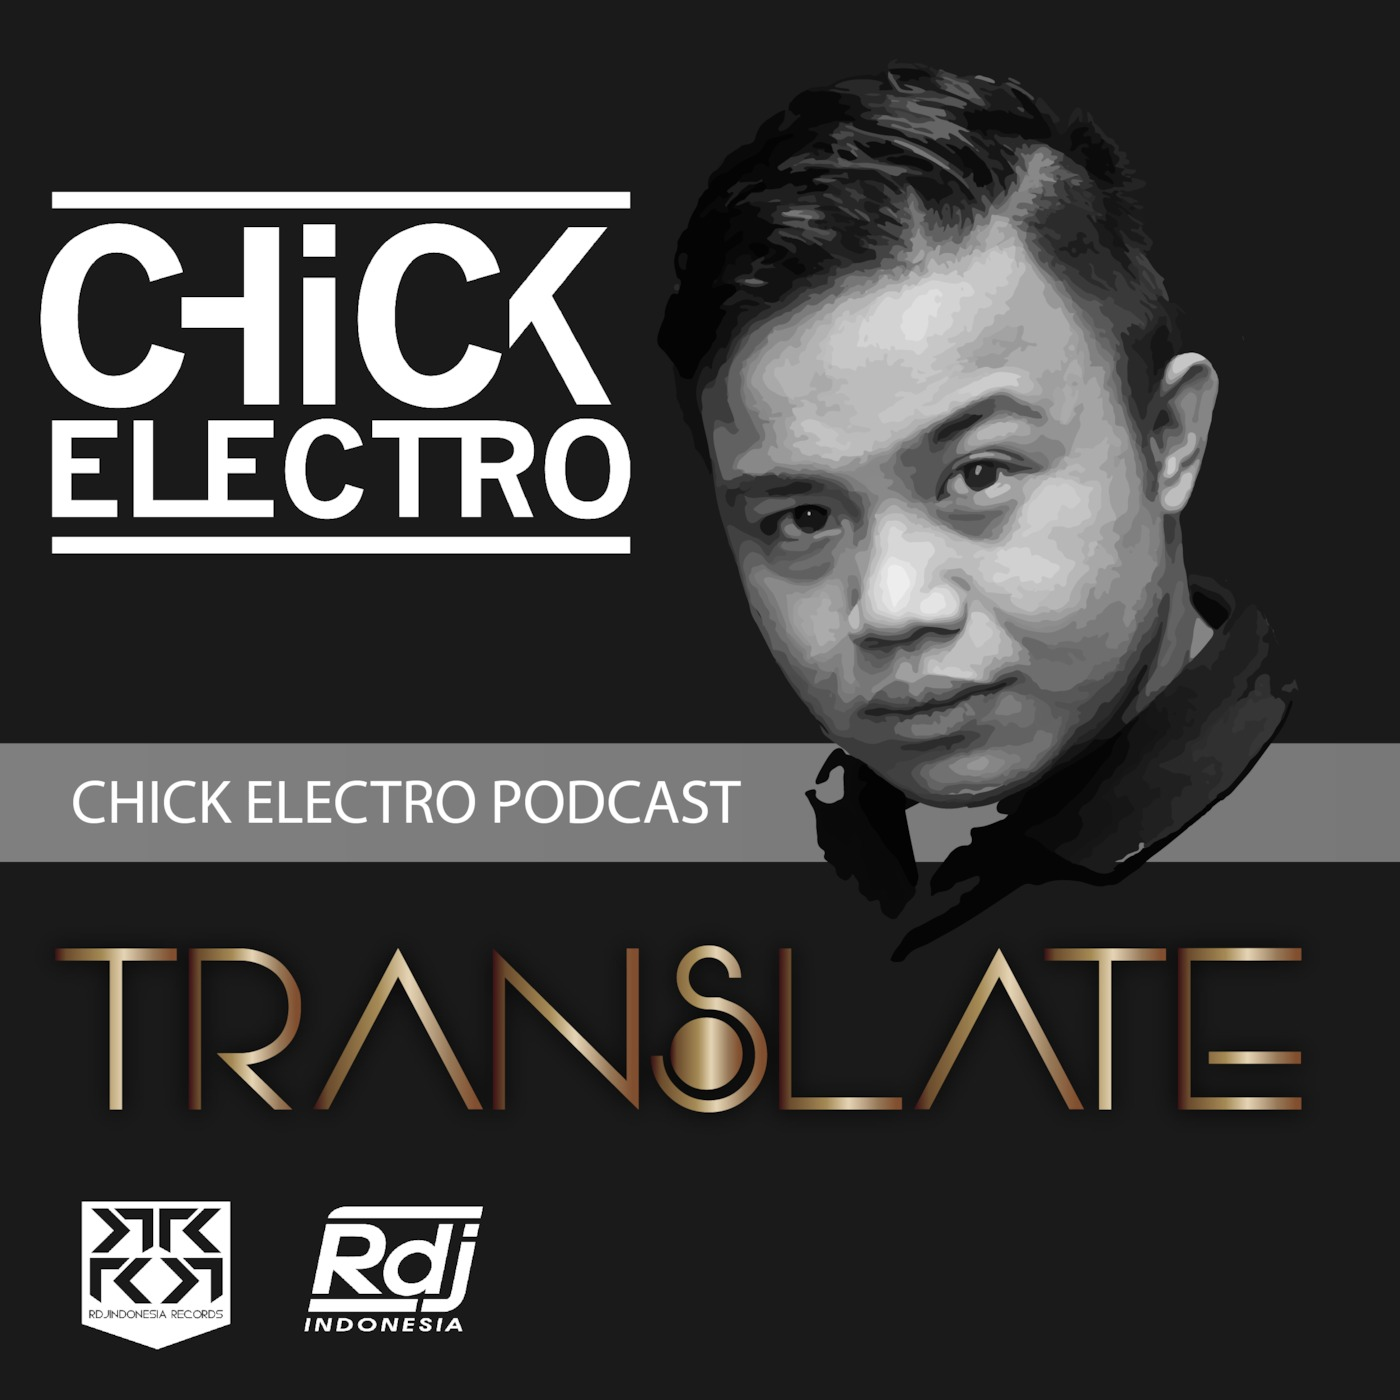 CHICK ELECTRO's Podcast